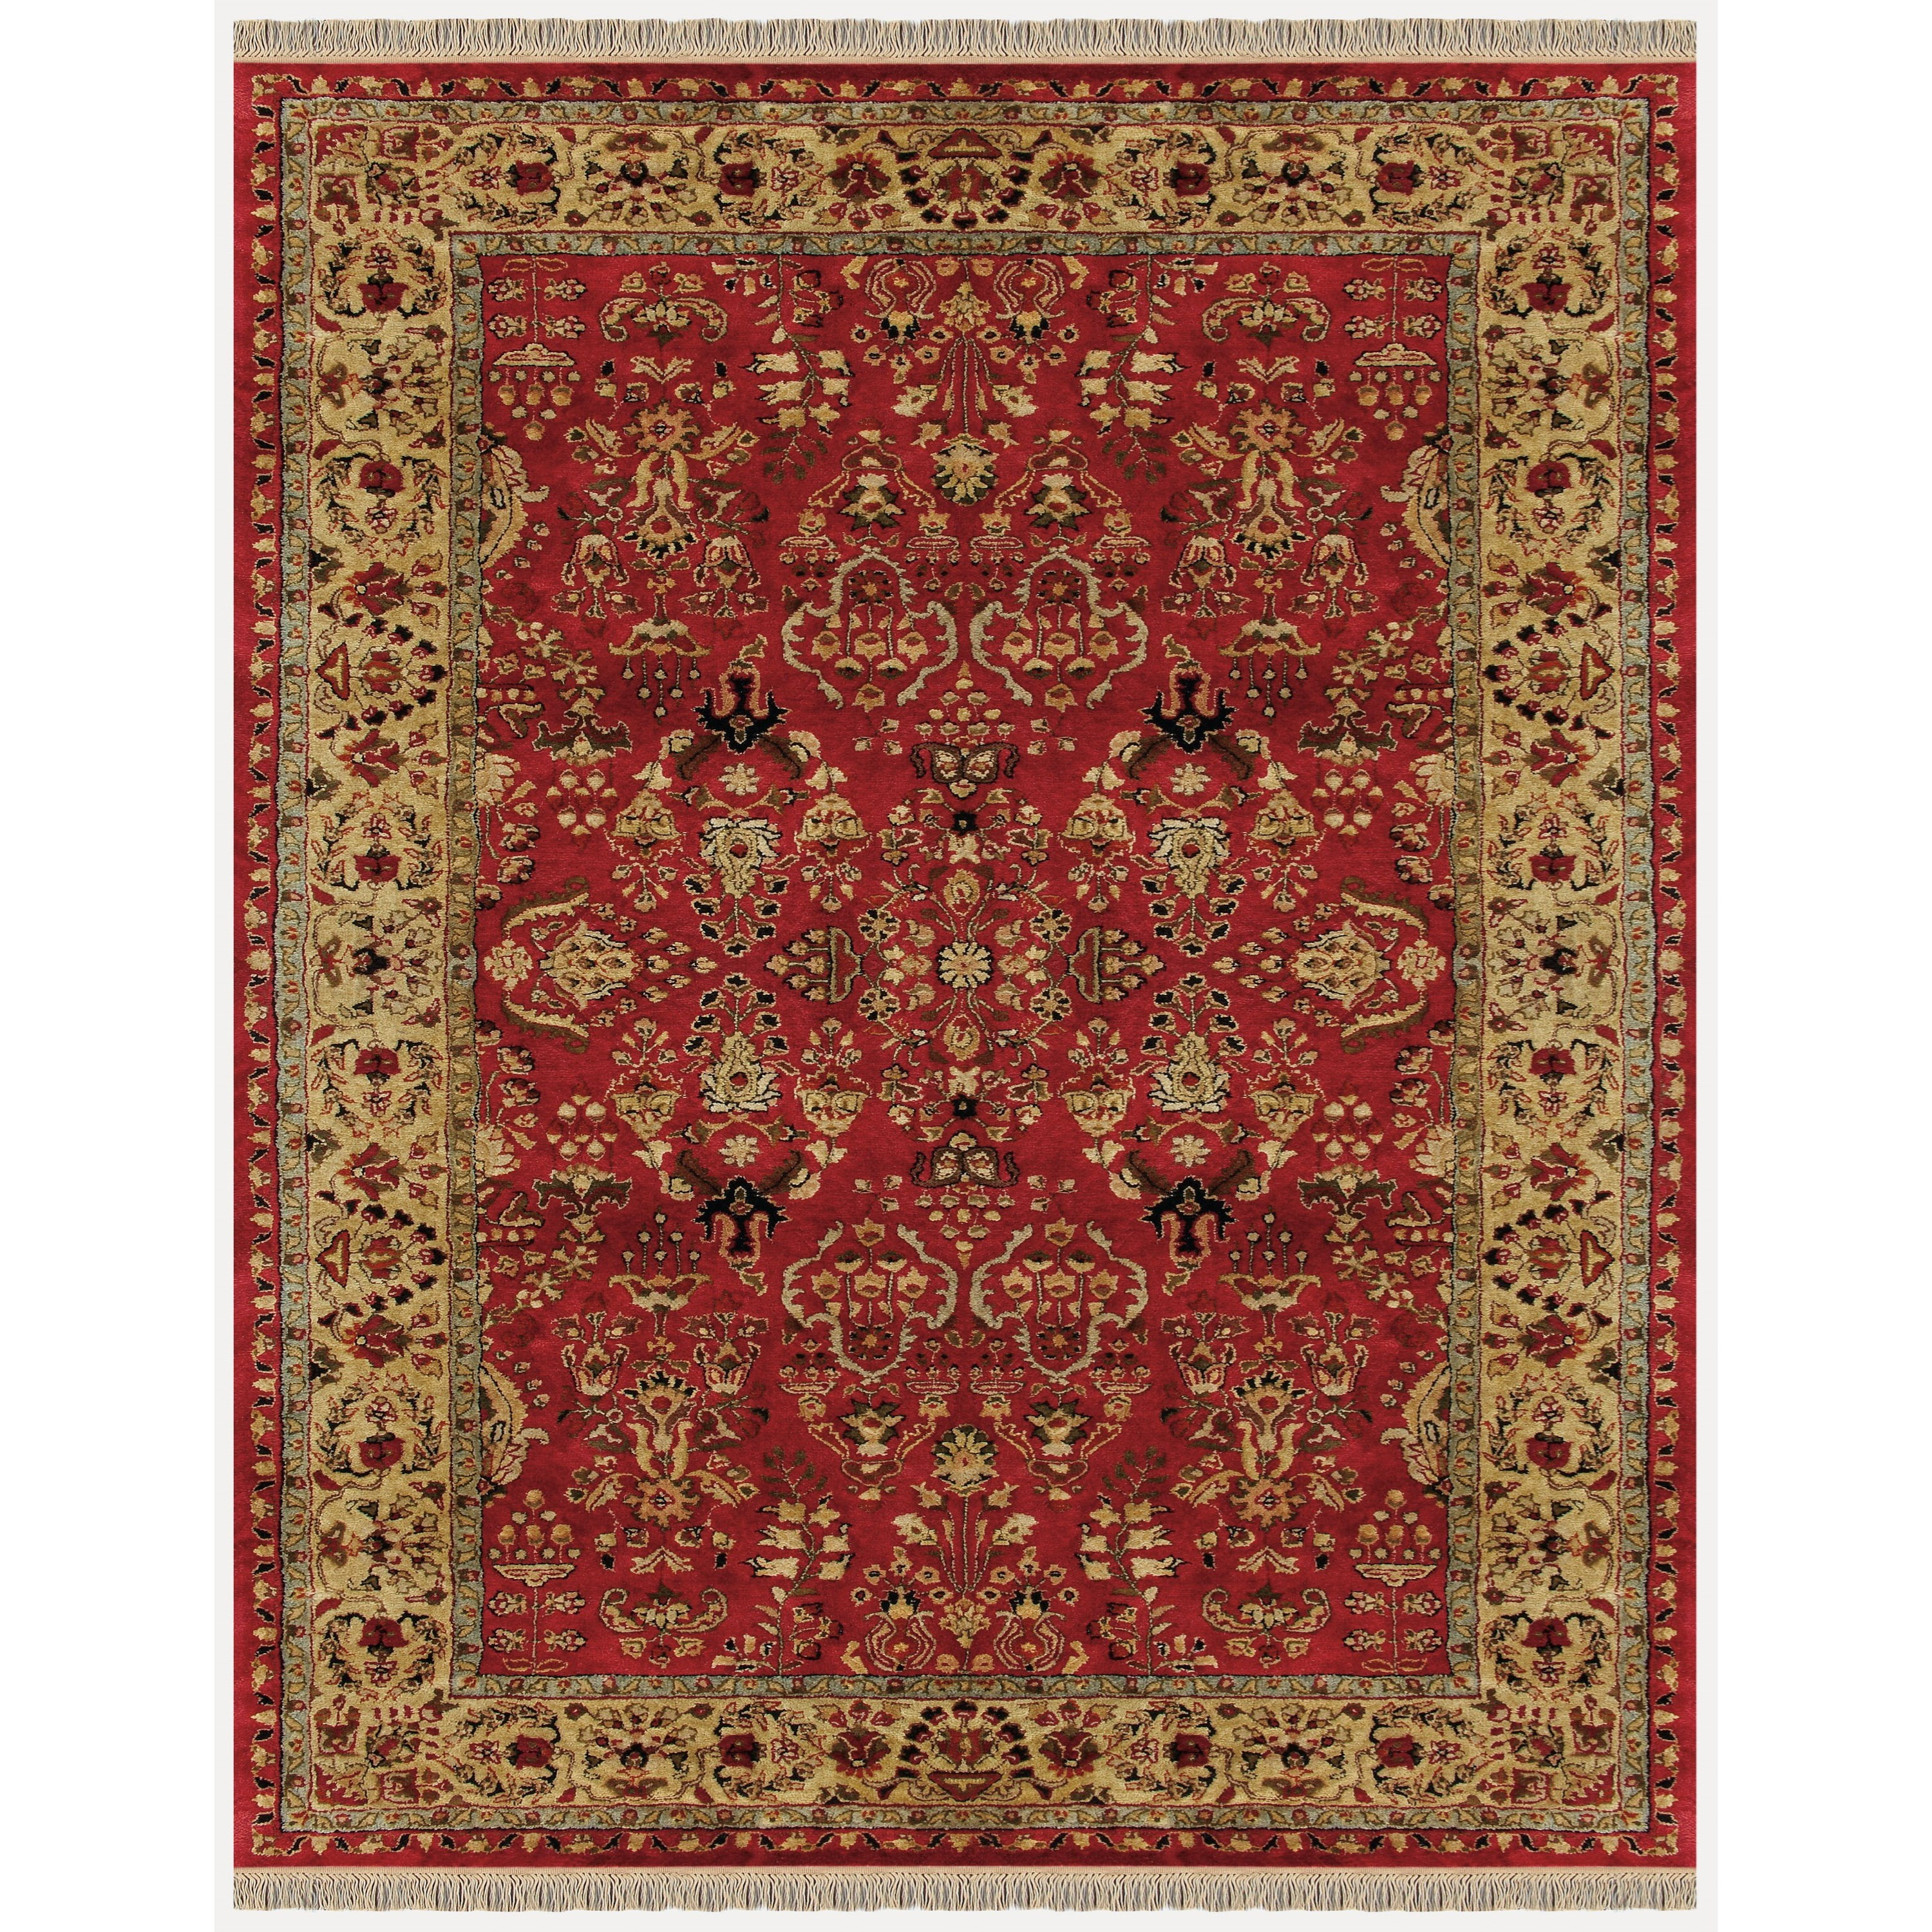 Amore Red/Light Gold 5' x 8' Area Rug by Feizy Rugs at Sprintz Furniture